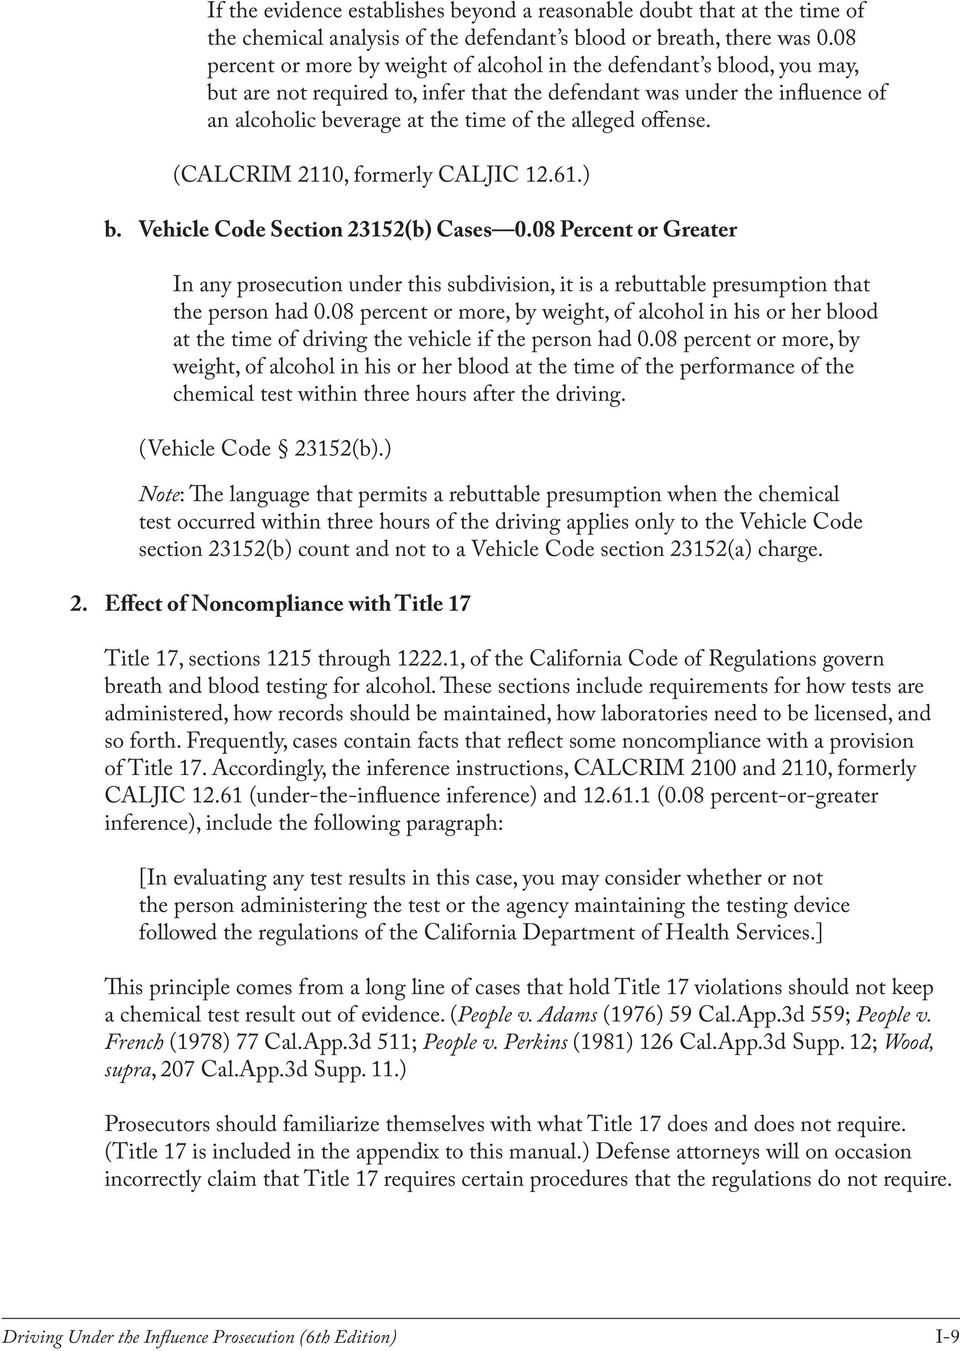 alleged offense. (CALCRIM 2110, formerly CALJIC 12.61.) b. Vehicle Code Section 23152(b) Cases 0.